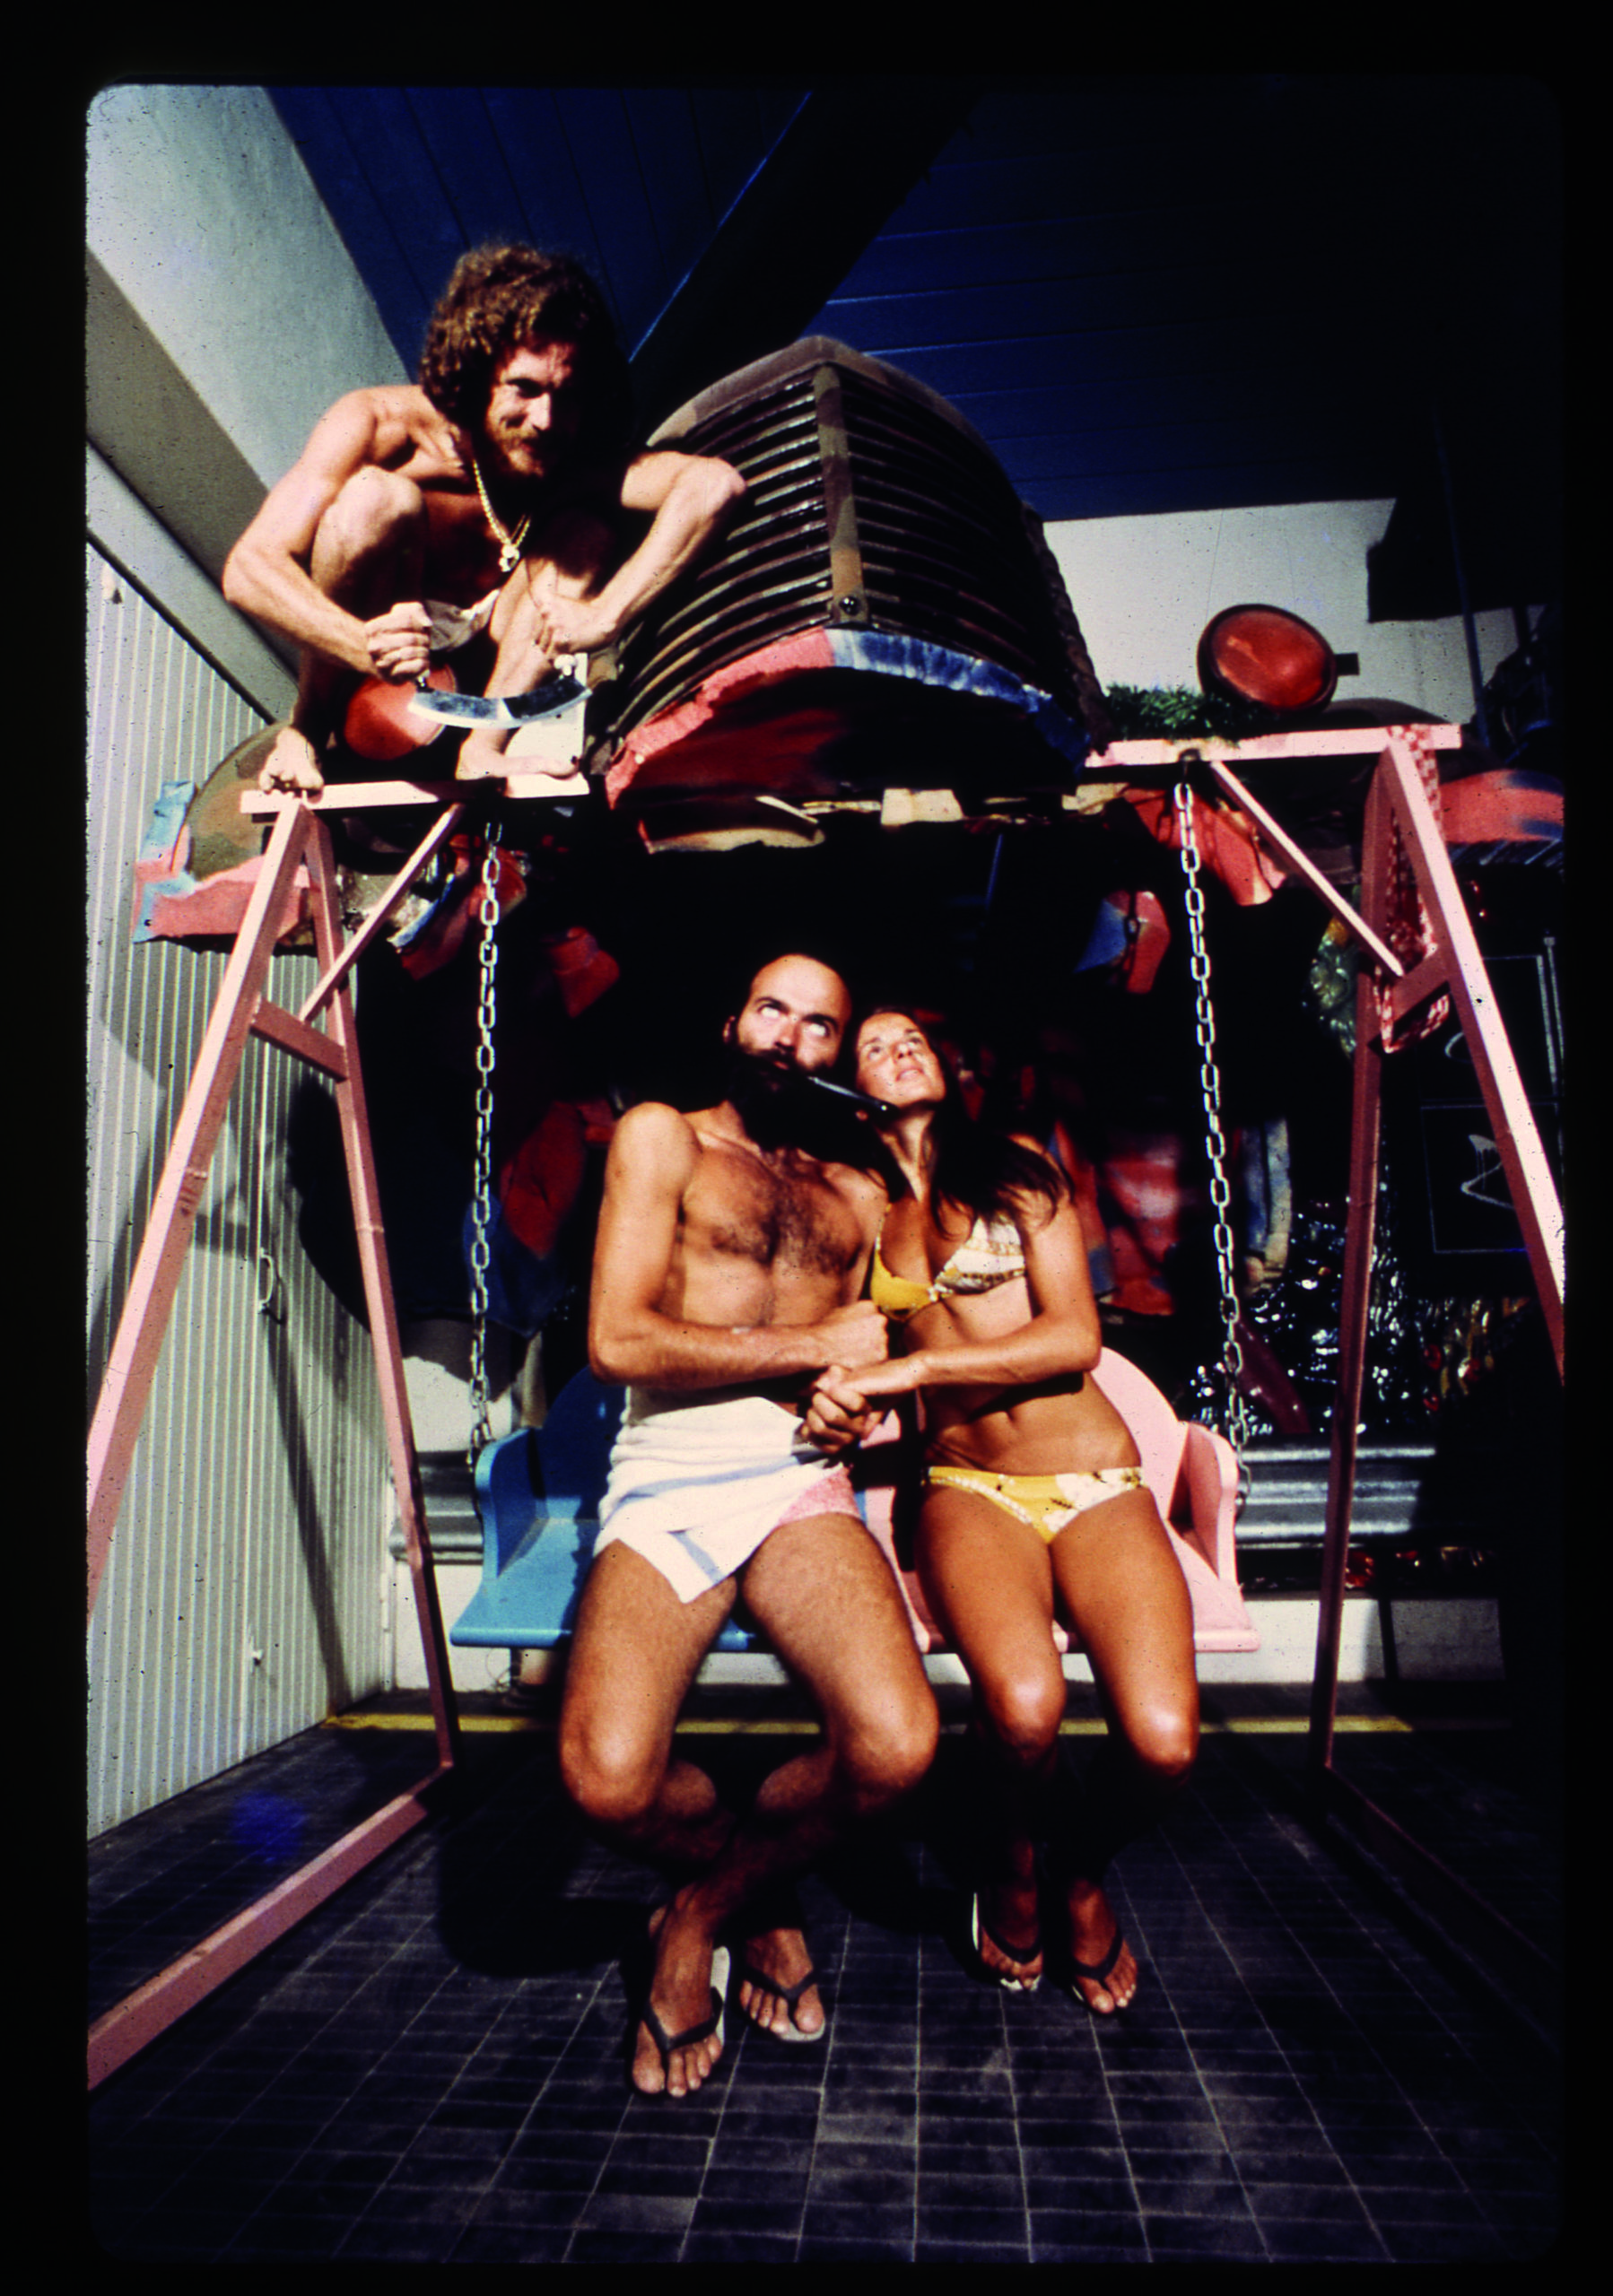 UFO, lovers on a swing chair, Bamba Issa, Forte dei Marmi, 1970. Photograph by Carlo Bachi, © Lapo Binazzi, UFO Archive